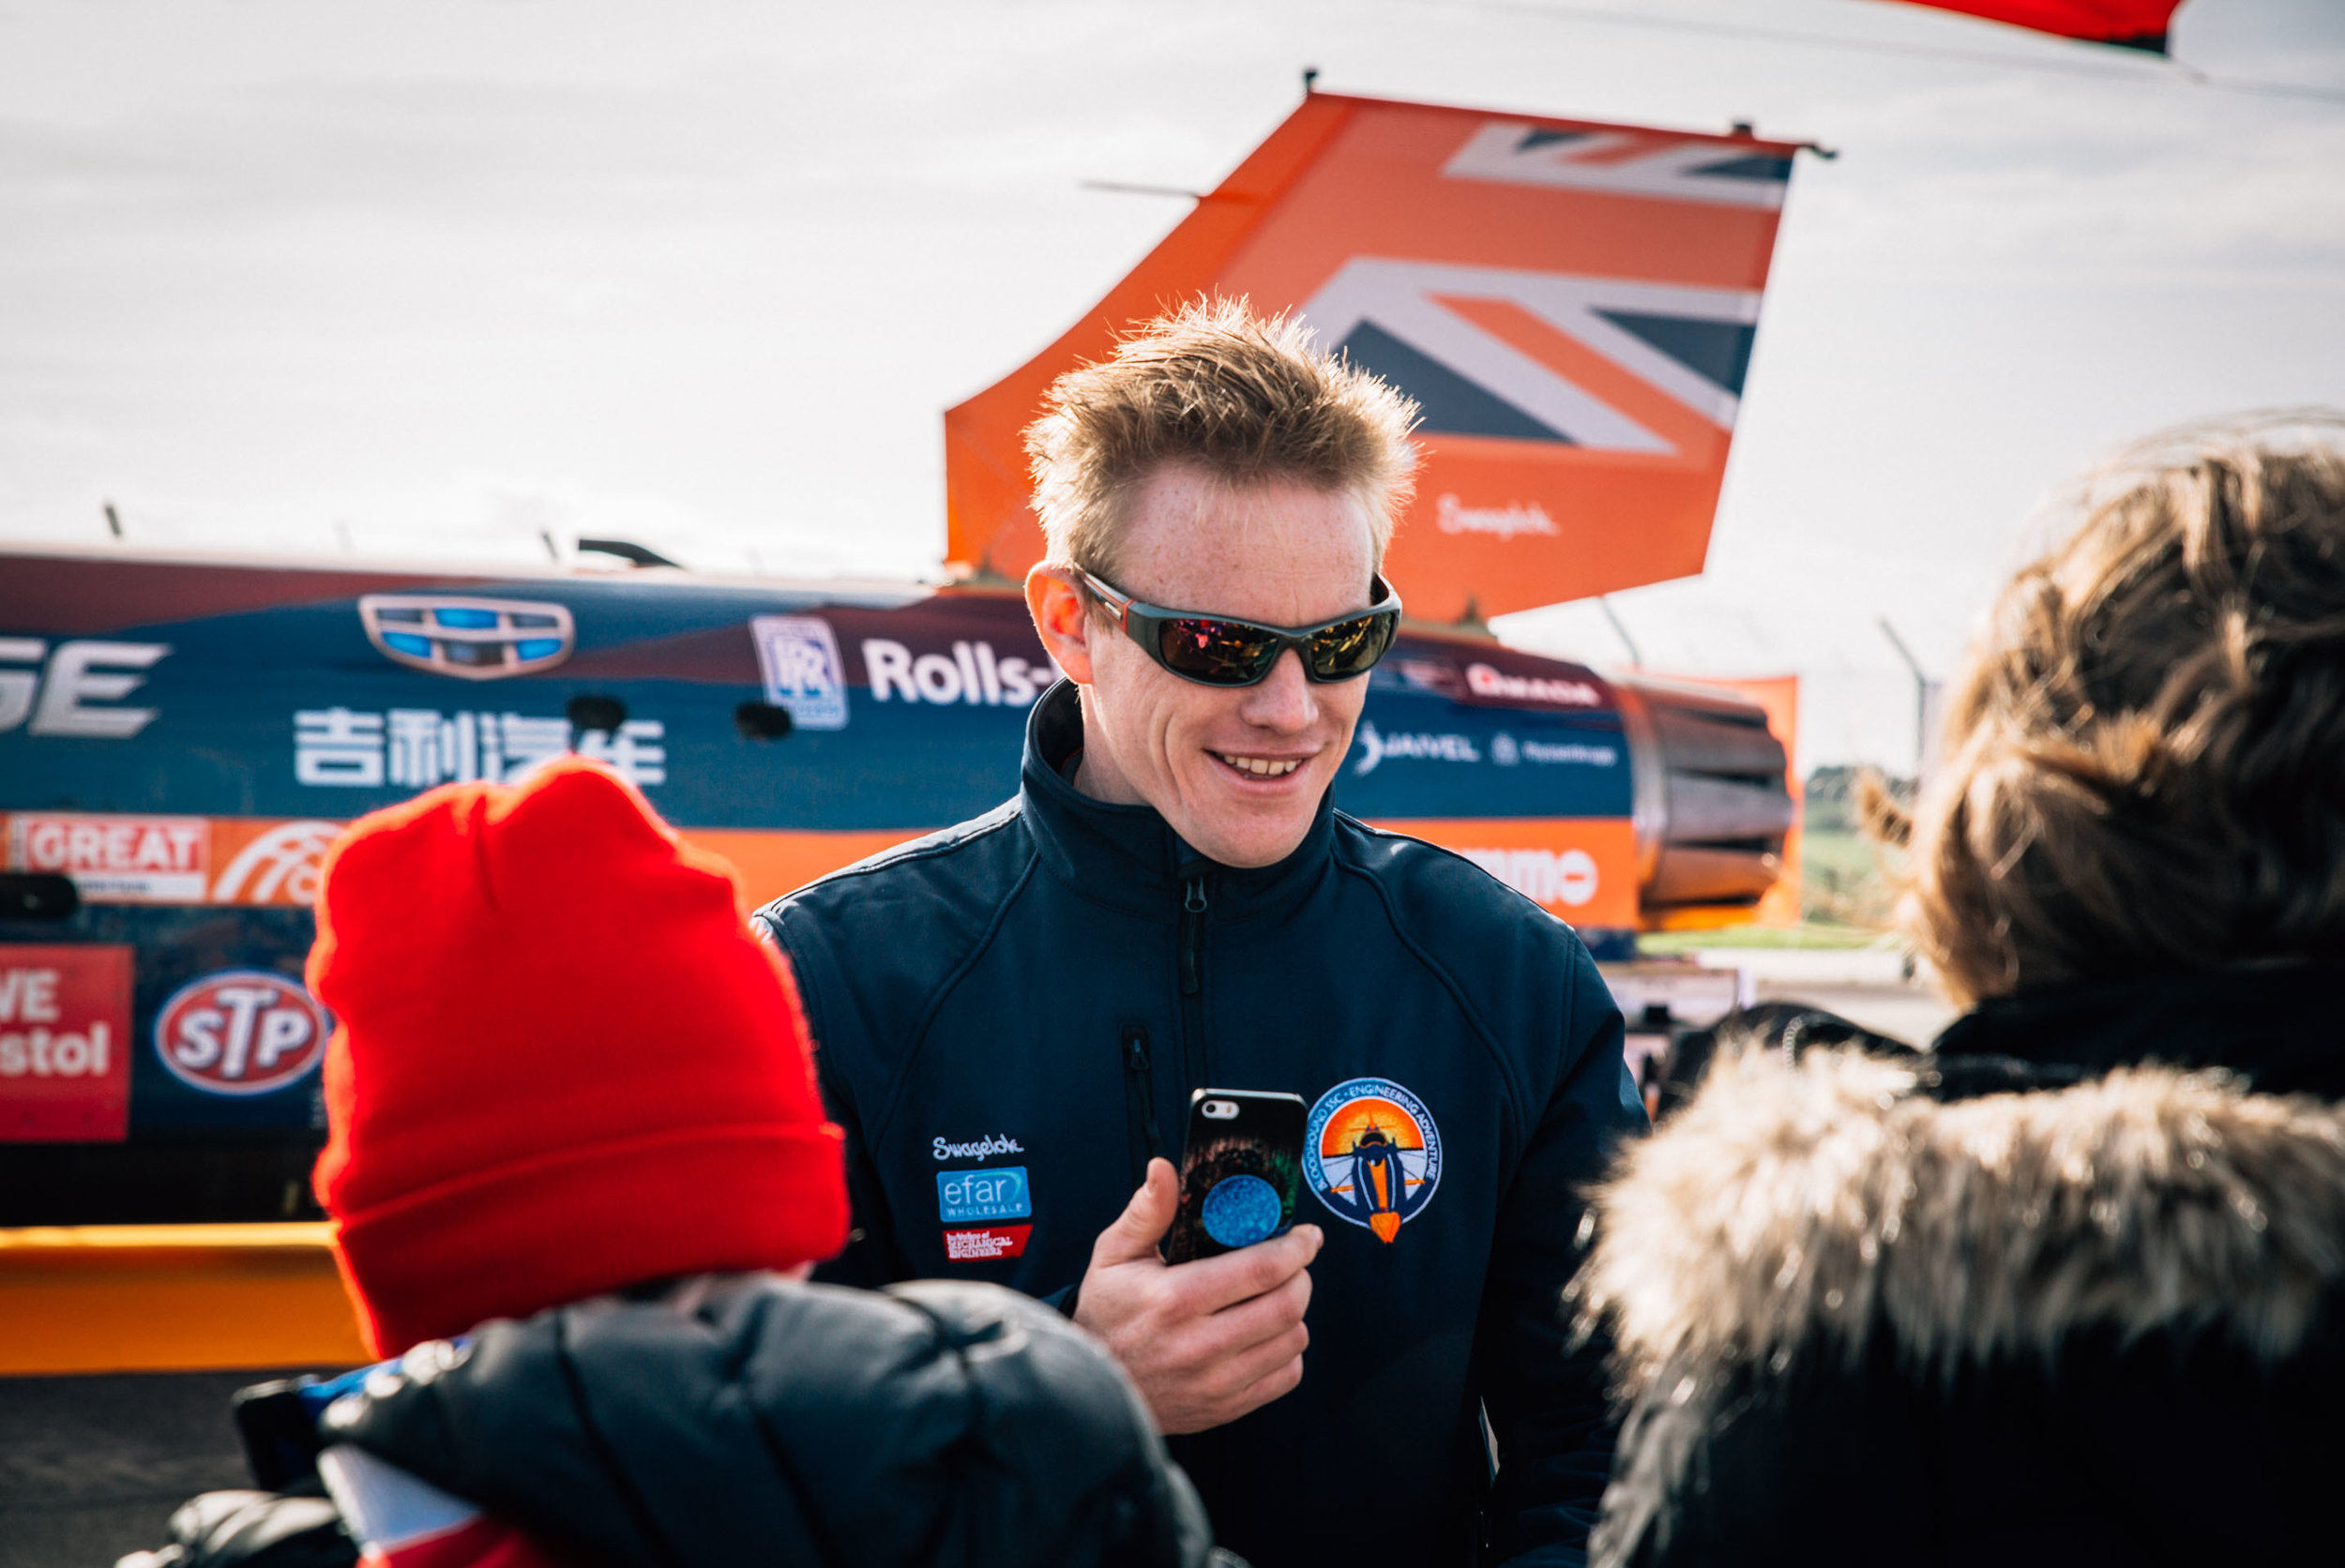 A member of the Bloodhound Supersonic Car team speaks with children visiting as part of the Cornwall Skills Show at Newquay Airport. Newquay, Cornwall, UK. 30th Oct 2017.